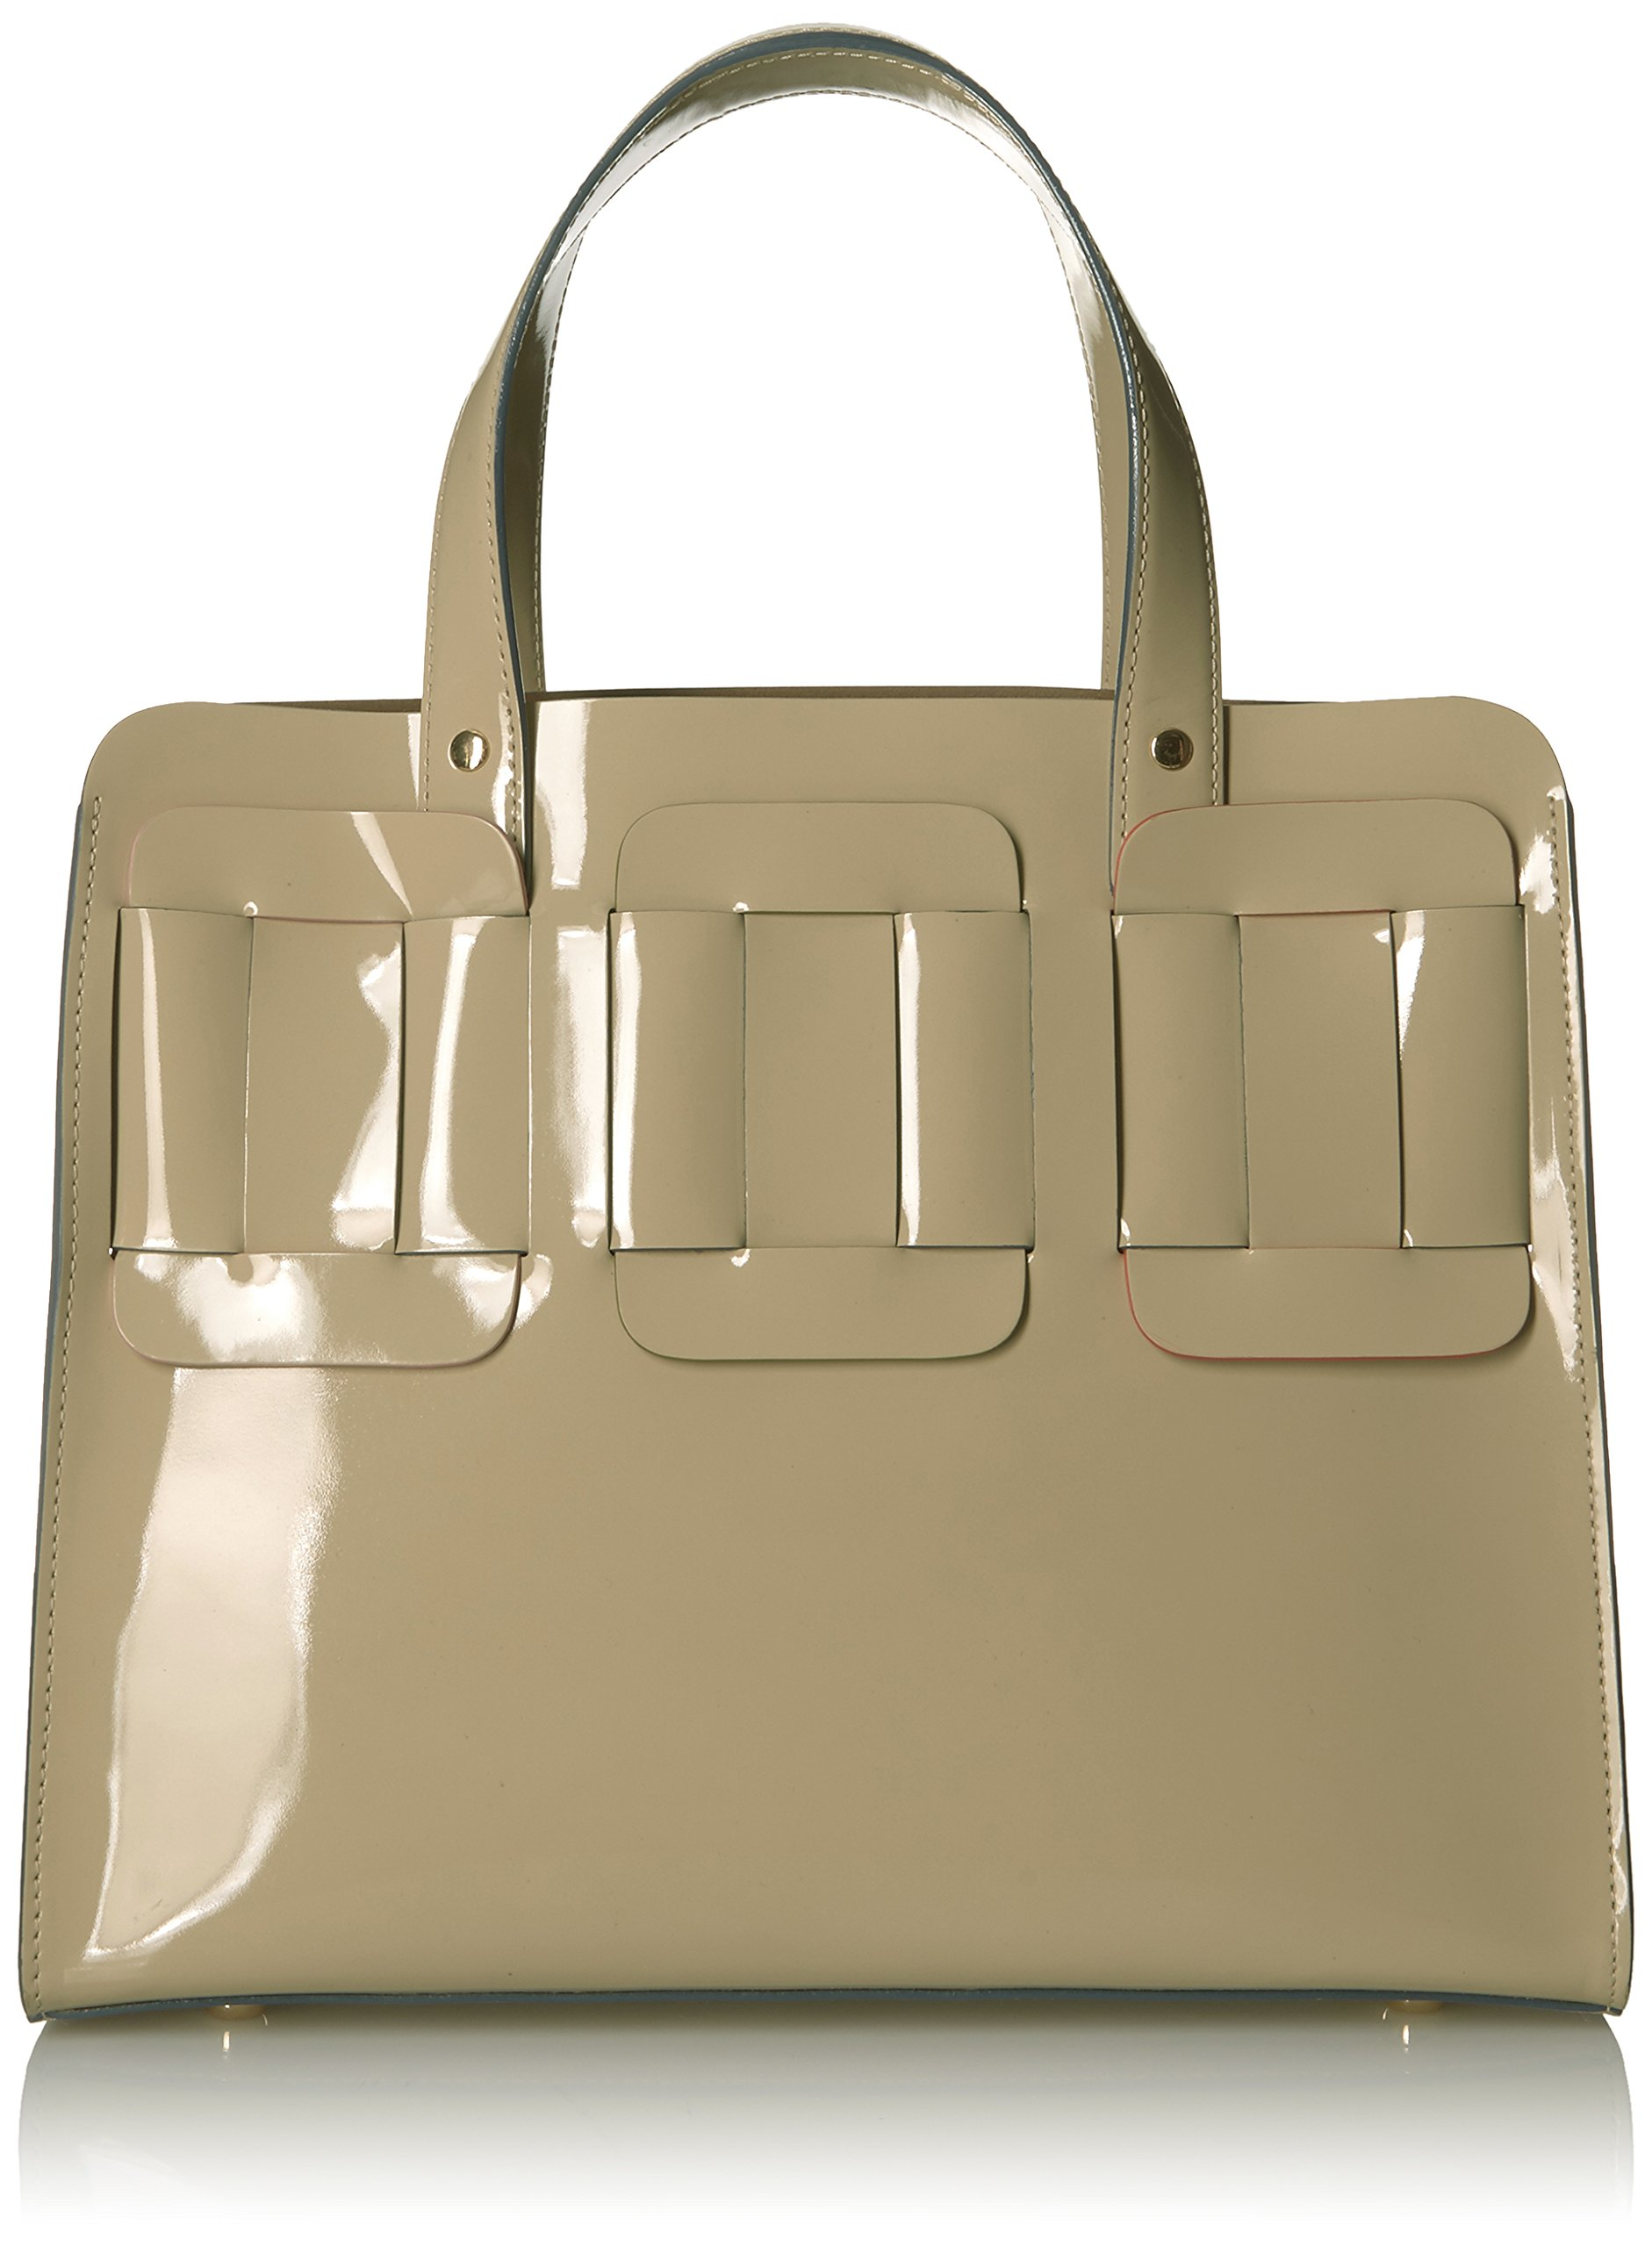 Orla Kiely Glass Leather Linked Margot Bag, Cream by Orla Kiely